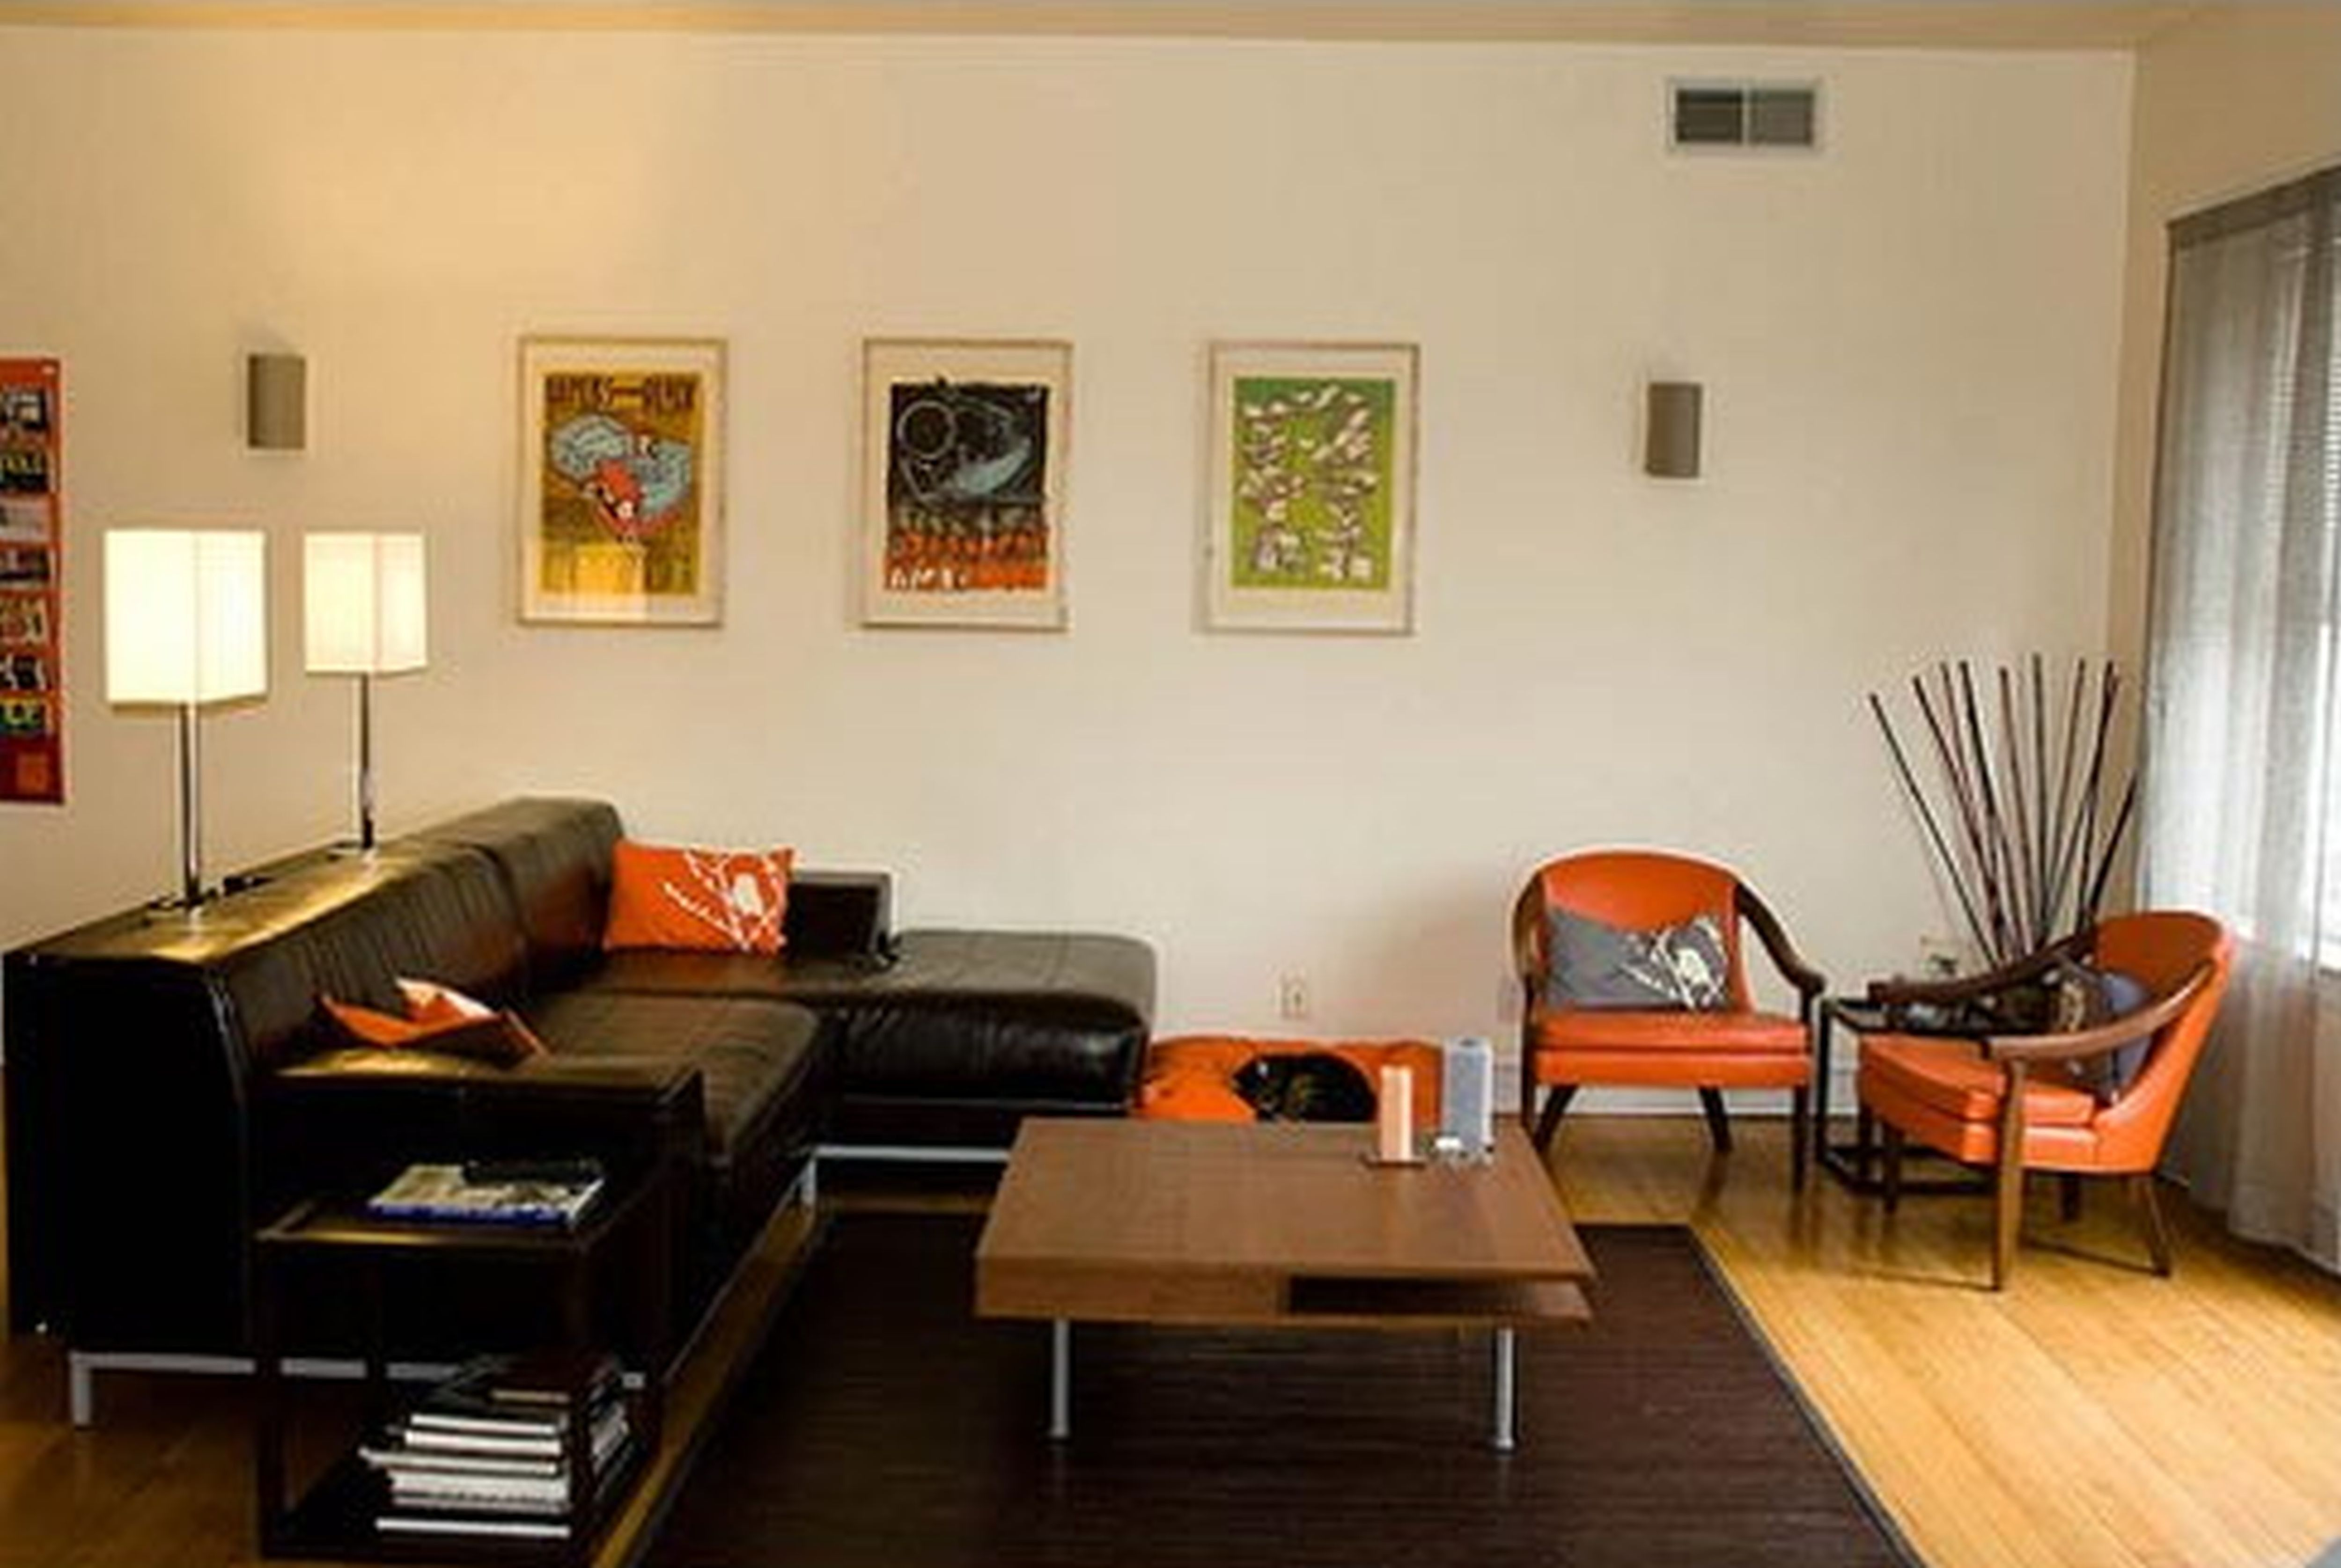 Innovative Wall Arts Decorating Living Room in Small Apartment Ideas with Black Sectional Sofa